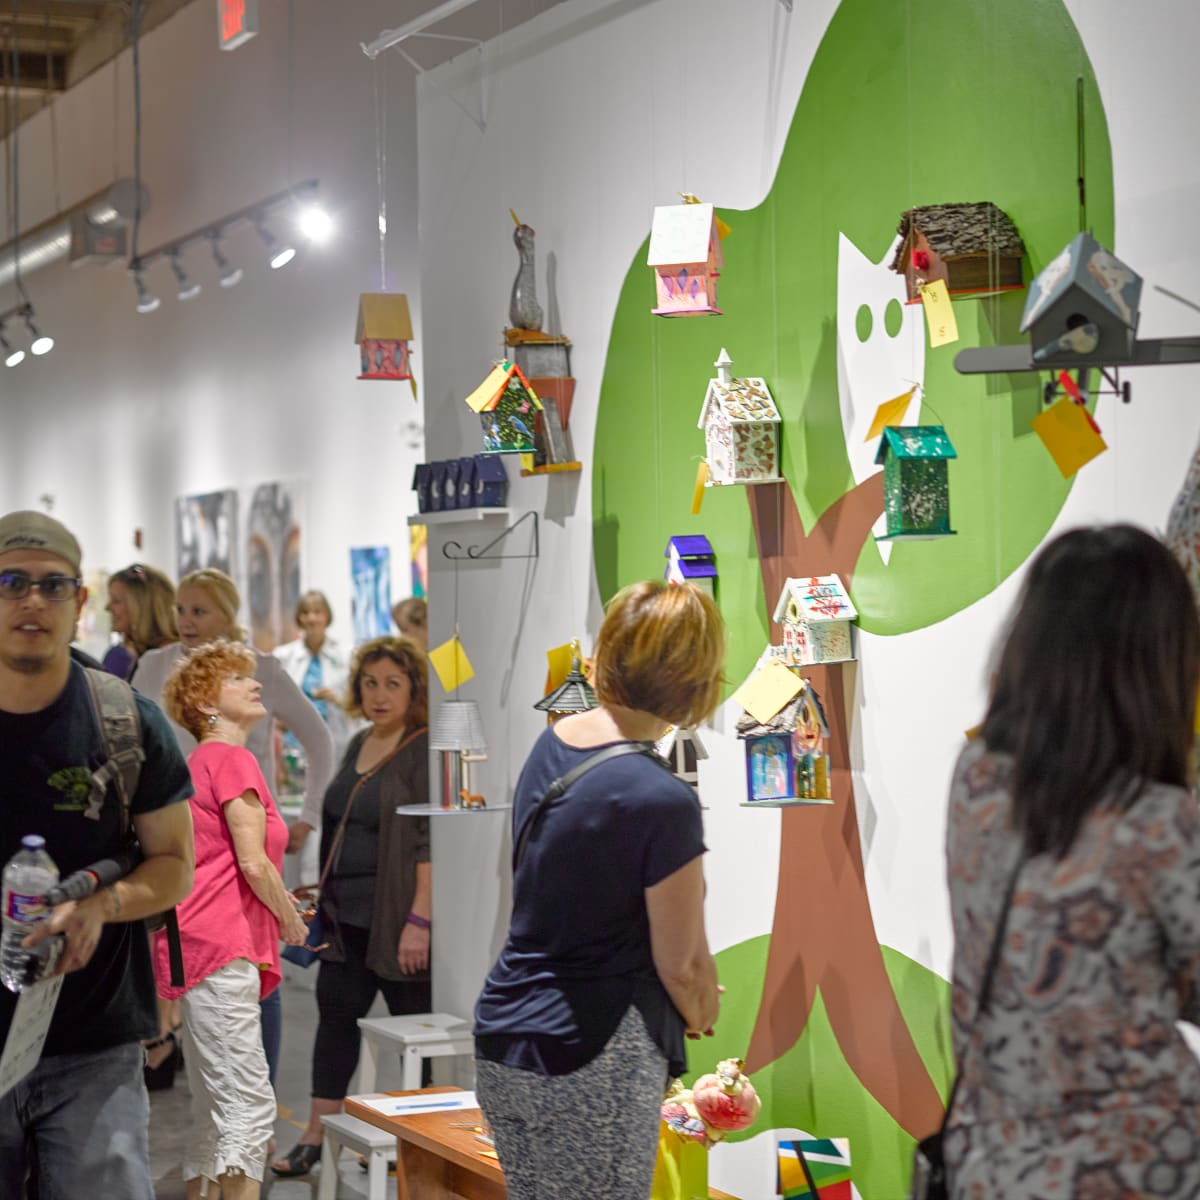 Guests perusing the artist birdhouses on display at Sawyer Yards Artist Stroll